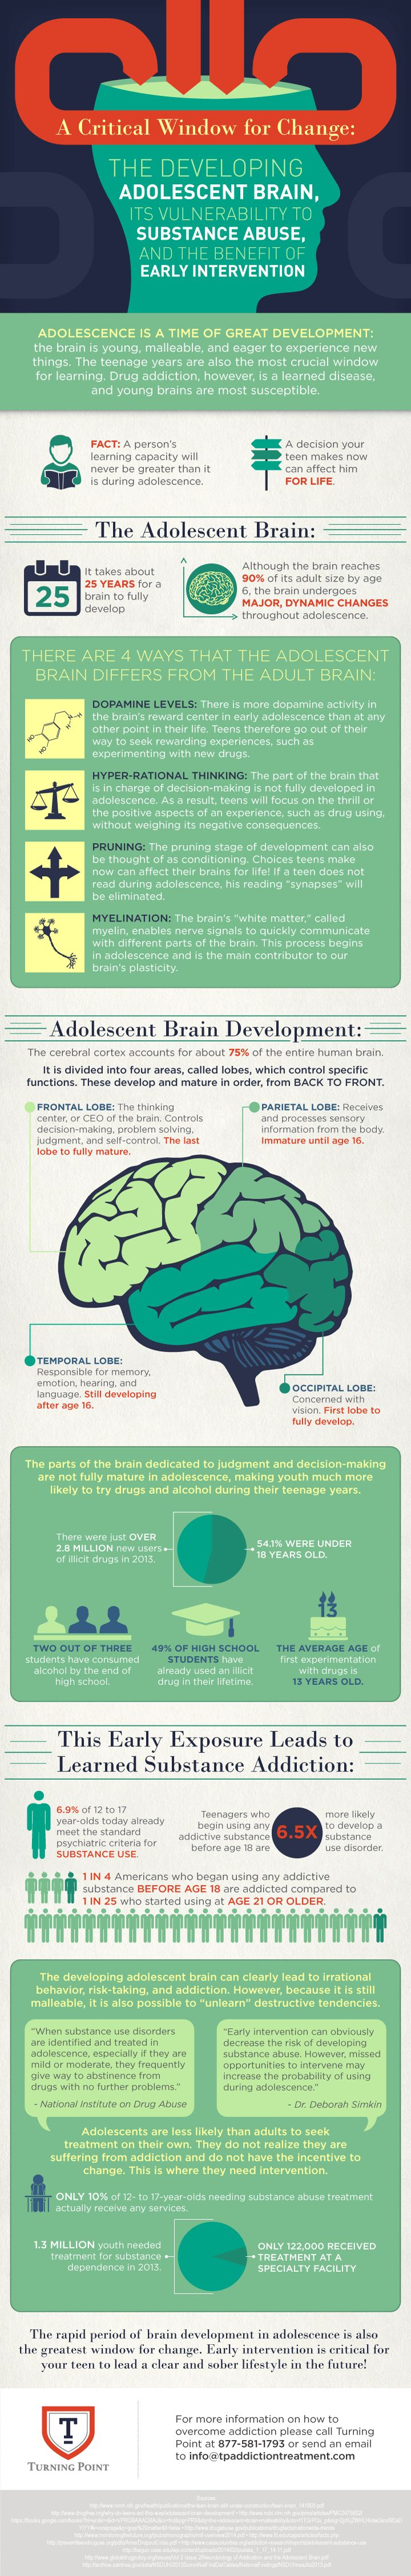 The adolescent brrain? Well lets just say it's different. Find out how in this infographic.